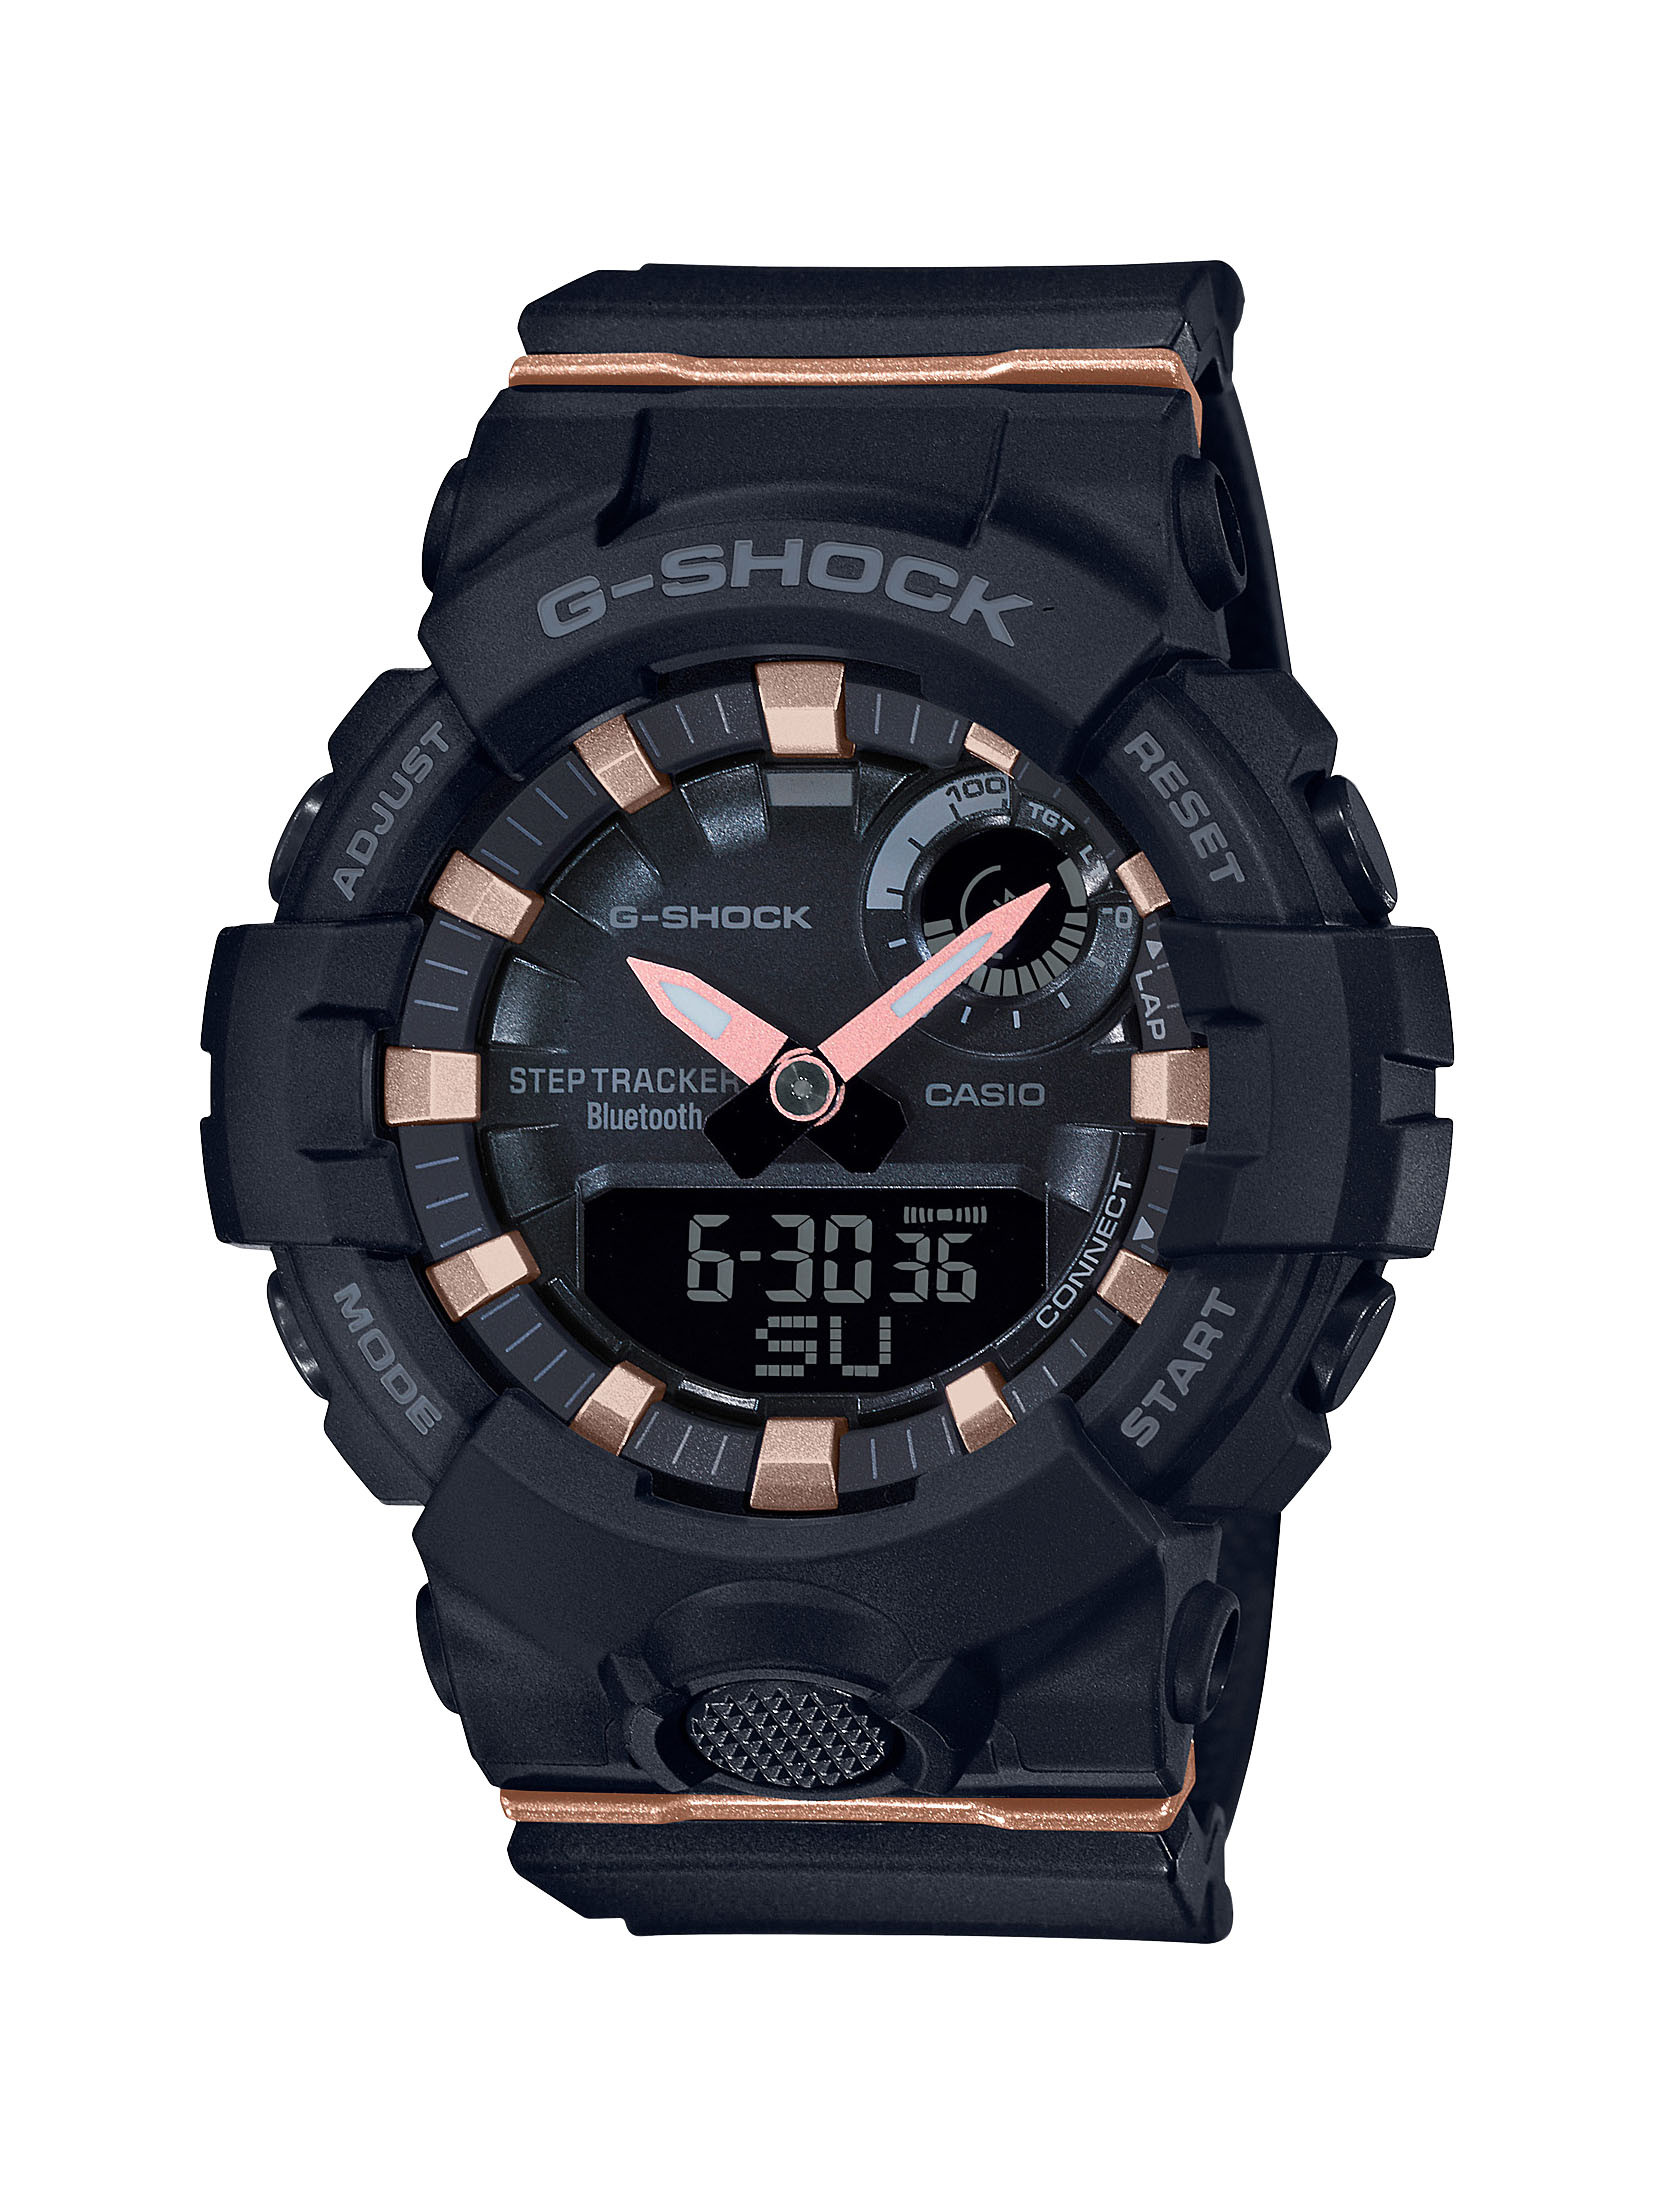 G-SHOCK S-Series Analog Digital Black Watch with Rose Gold